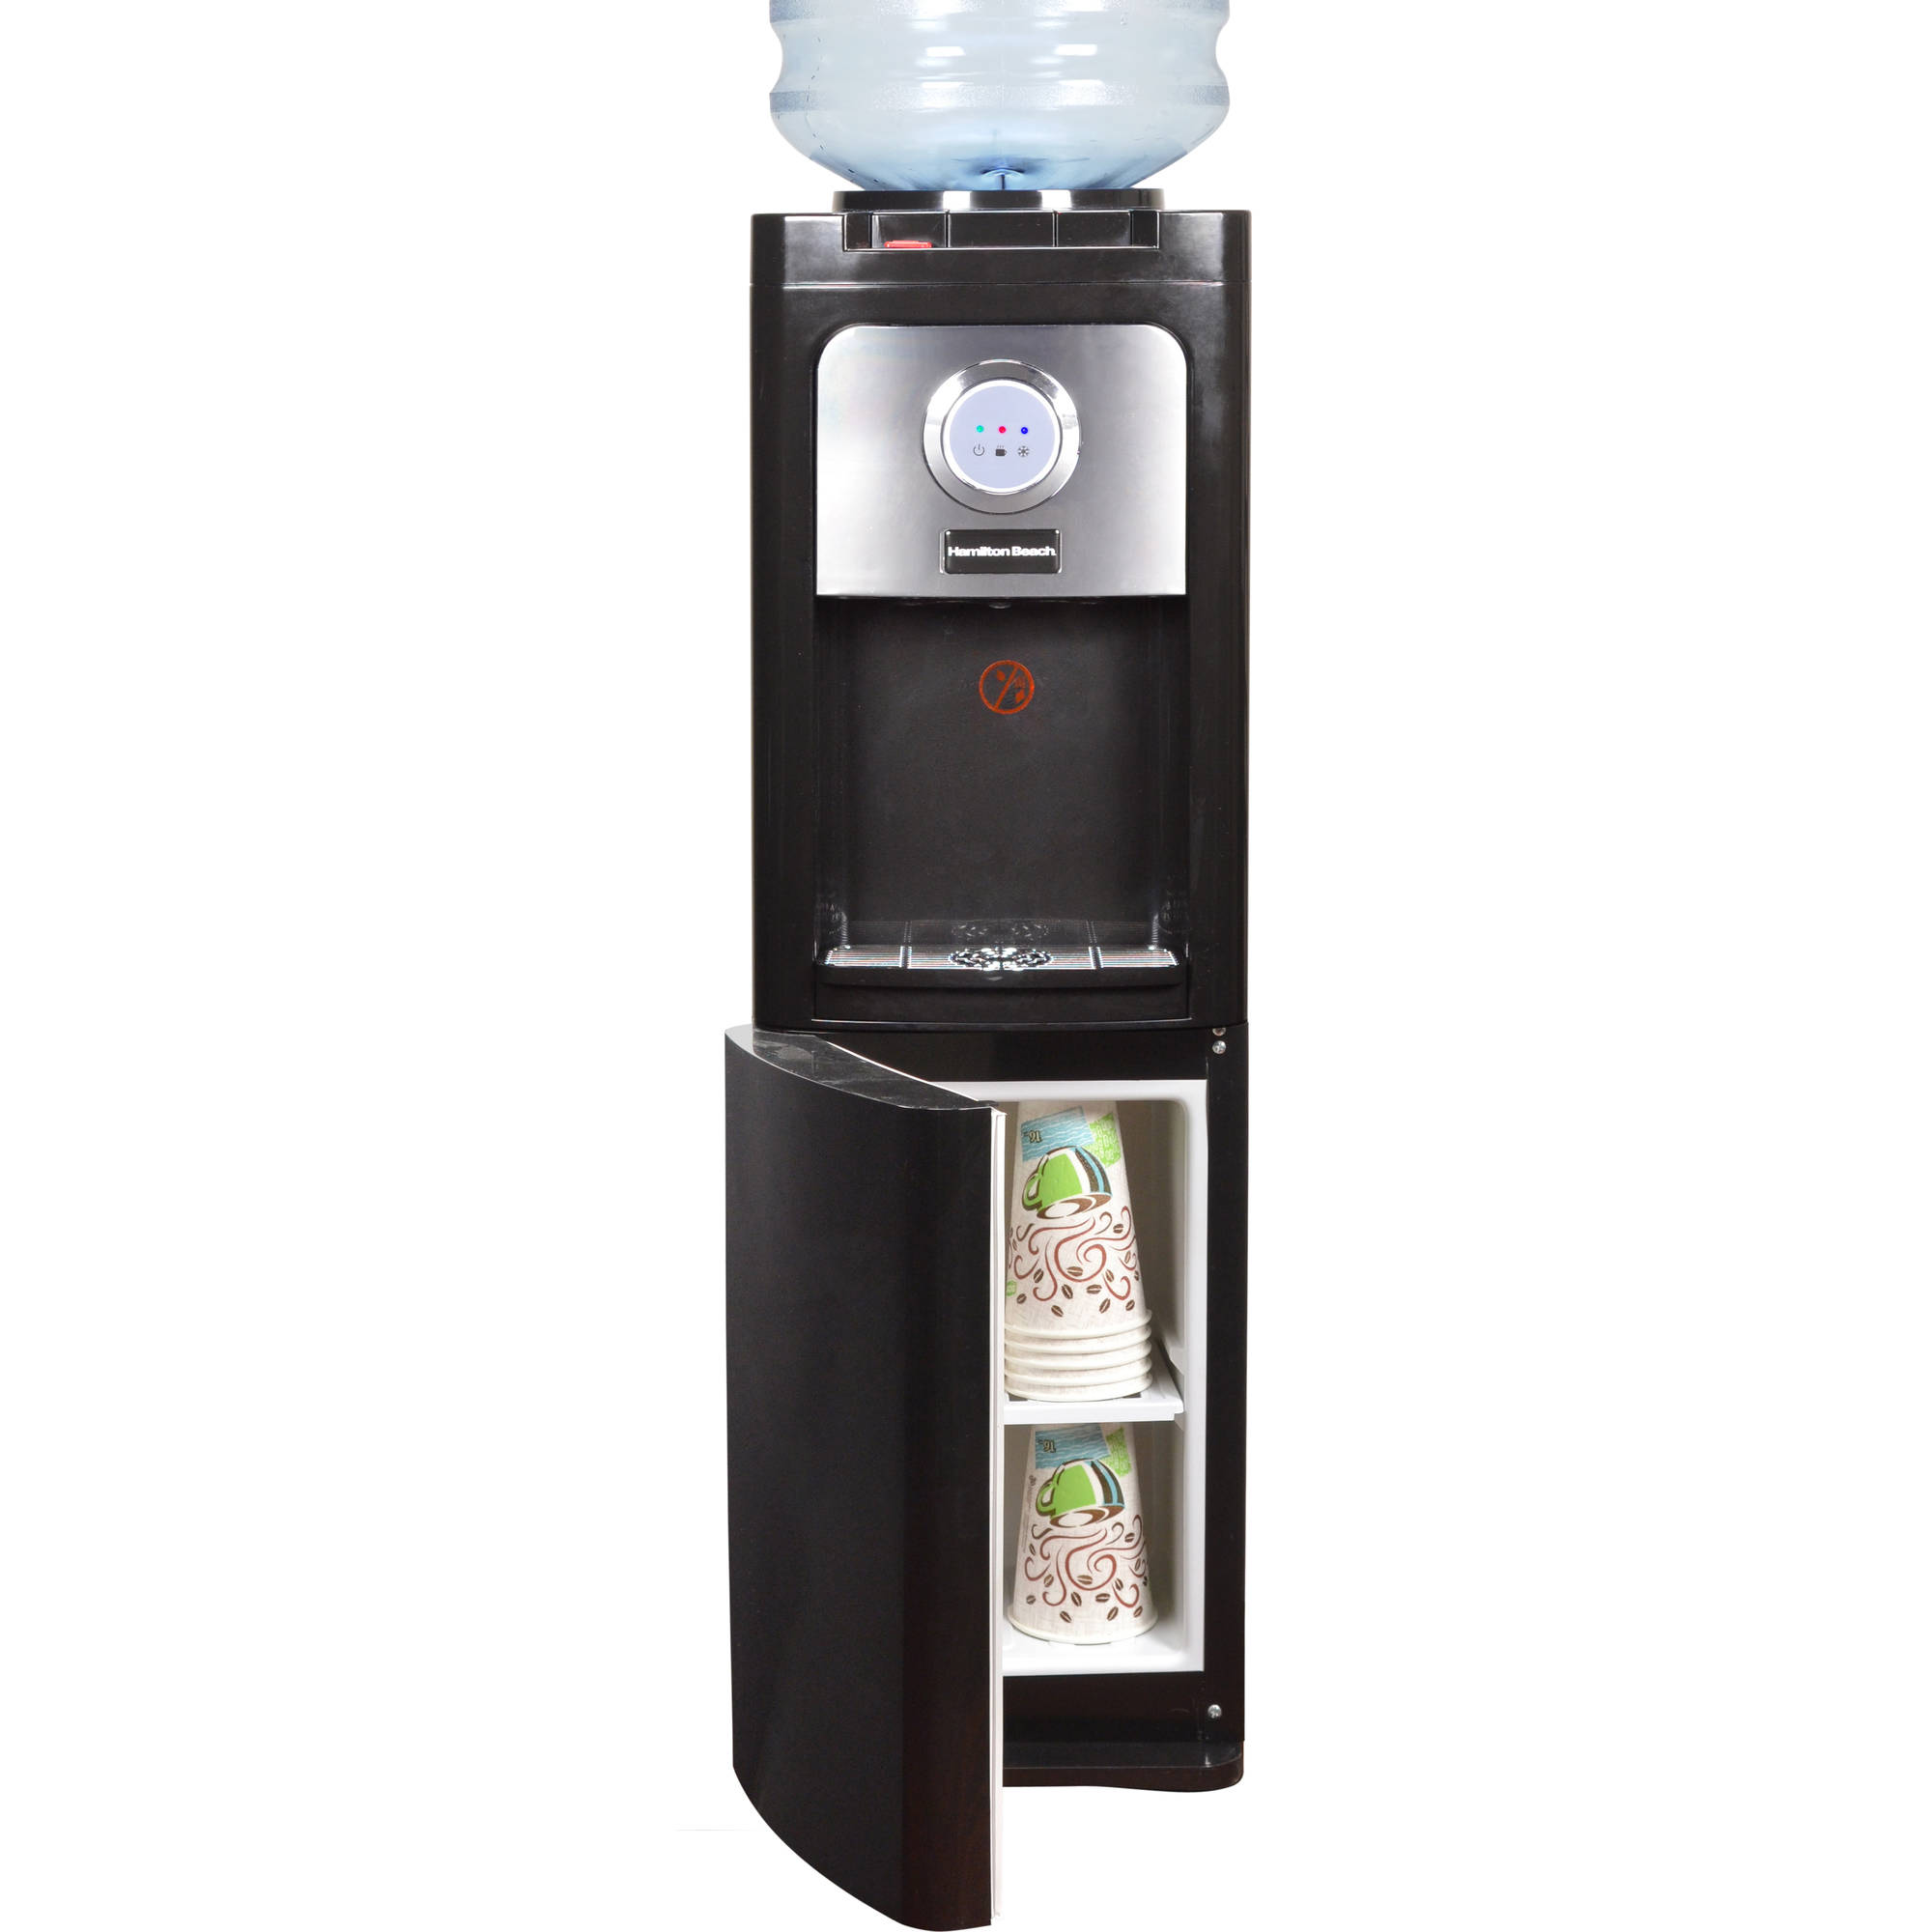 Charmant Hamilton Beach TL 5 5W Top Loading Water Dispenser With Storage Cabinet, Hot